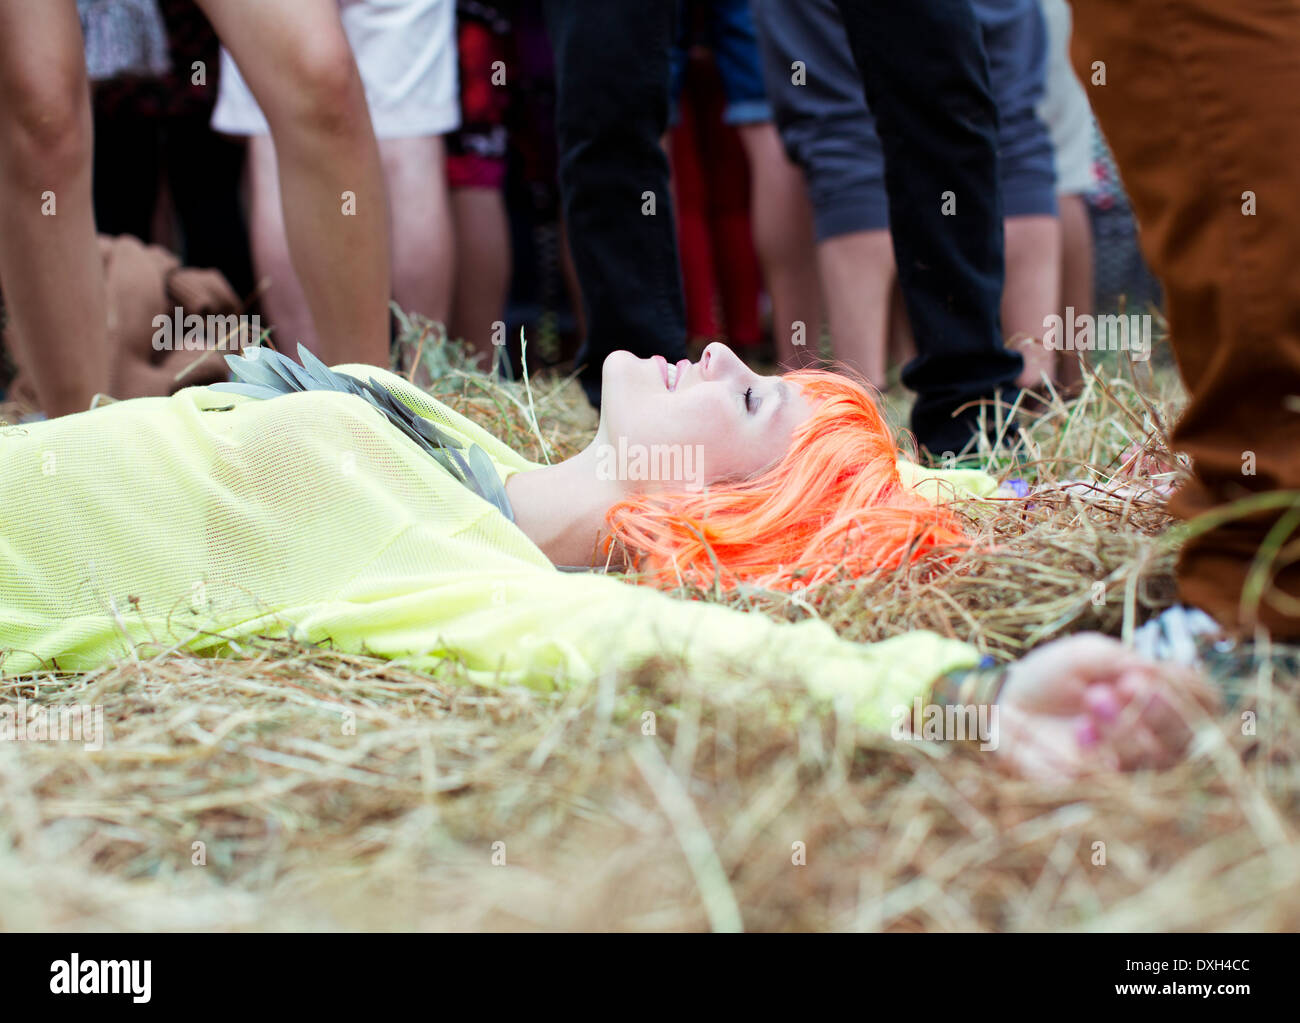 Woman in wig laying with arms outstretched in grass at music festival Stock Photo